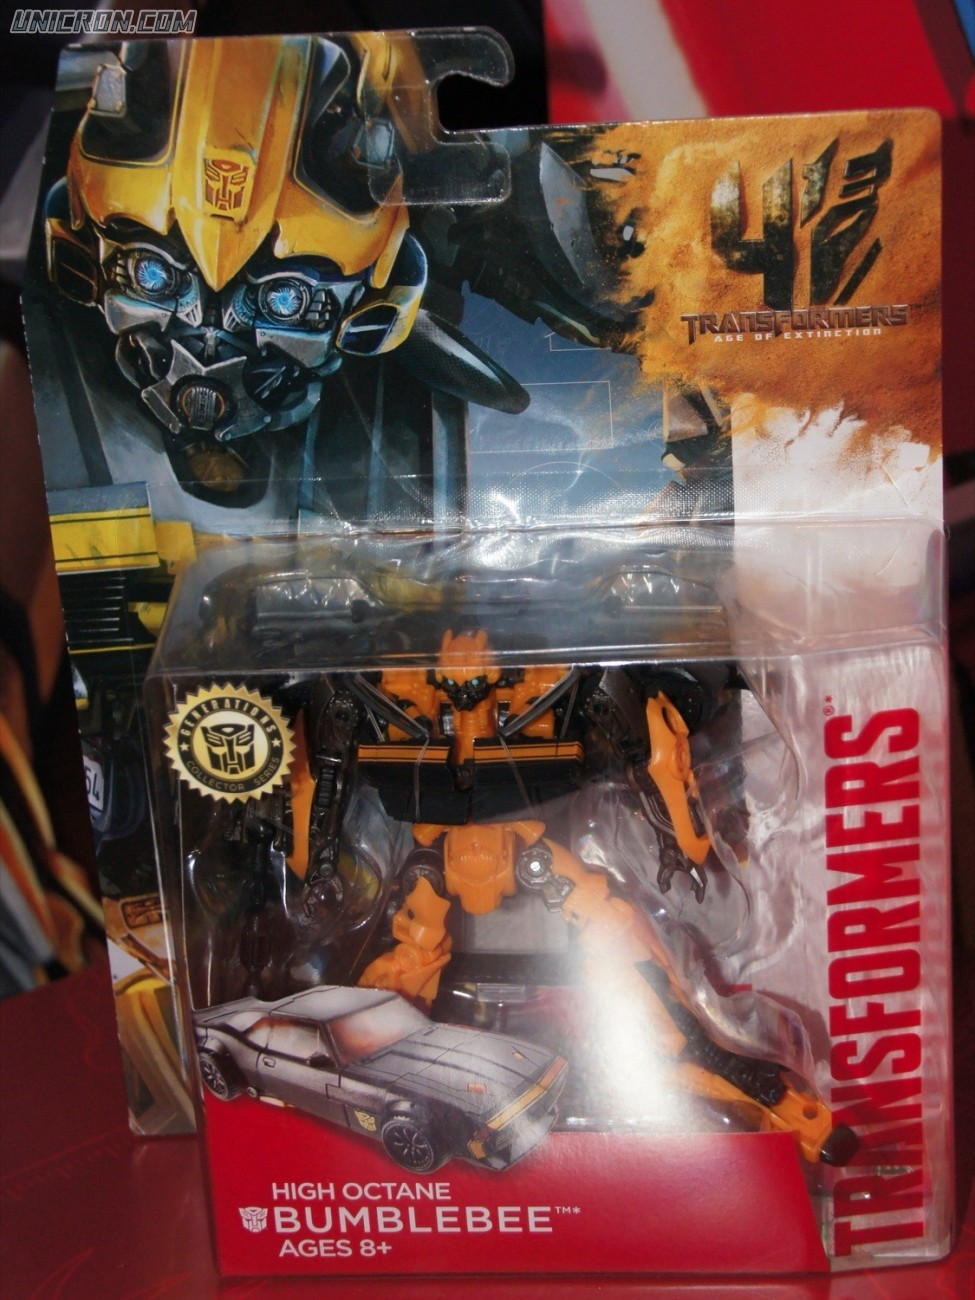 Transformers 4 Age of Extinction High Octane Bumblebee toy